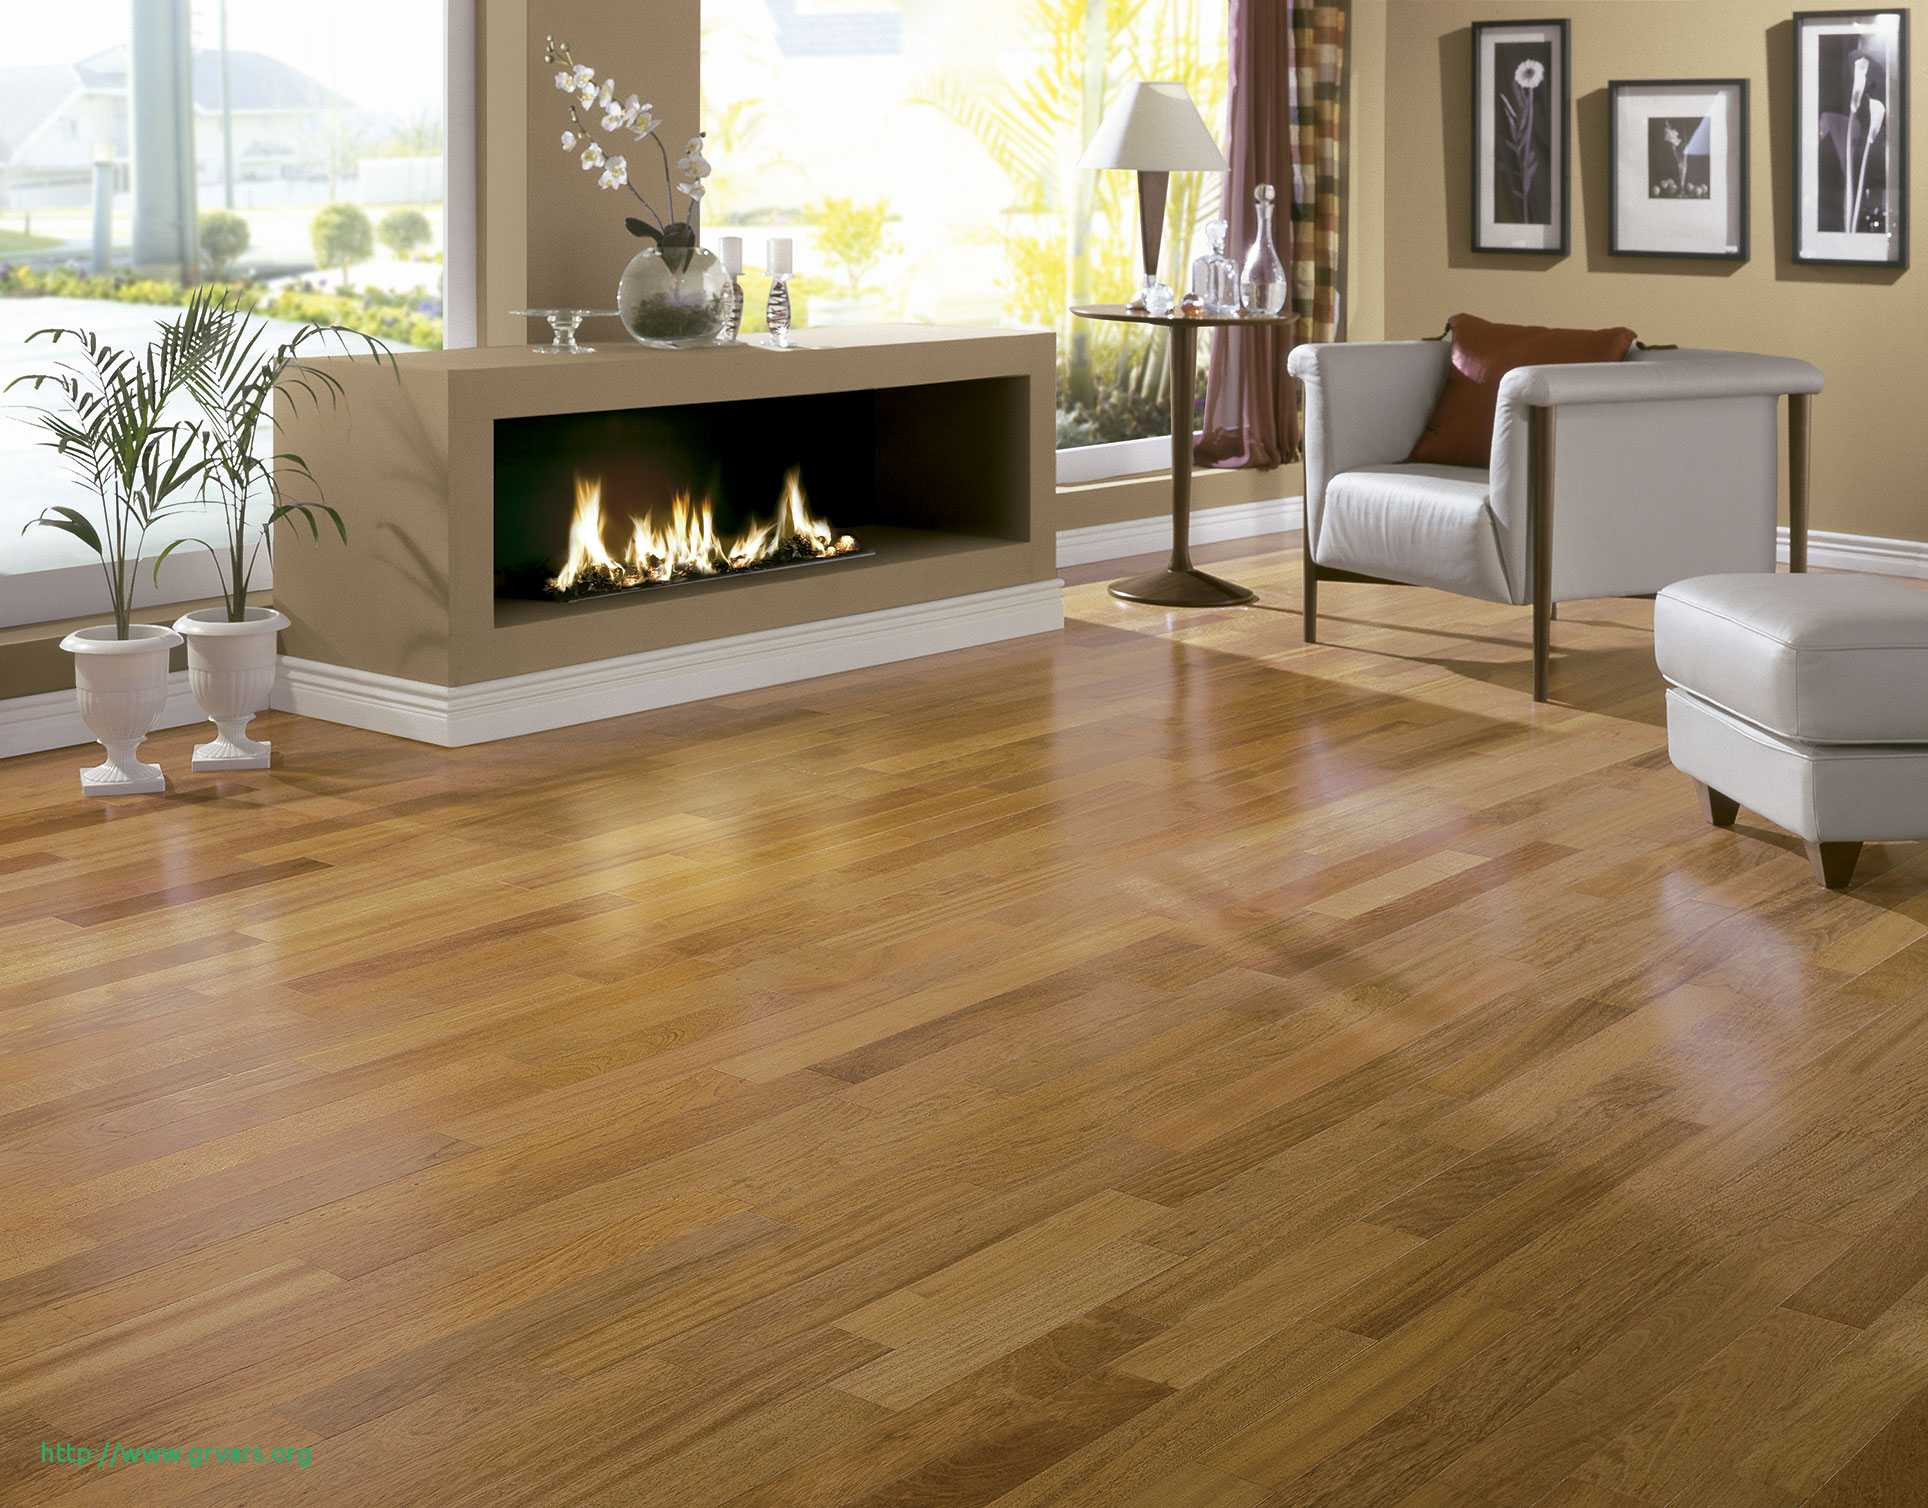 hardwood floor fireplace transition of difference in hardwood floors charmant engaging discount hardwood with difference in hardwood floors charmant engaging discount hardwood flooring 5 whe